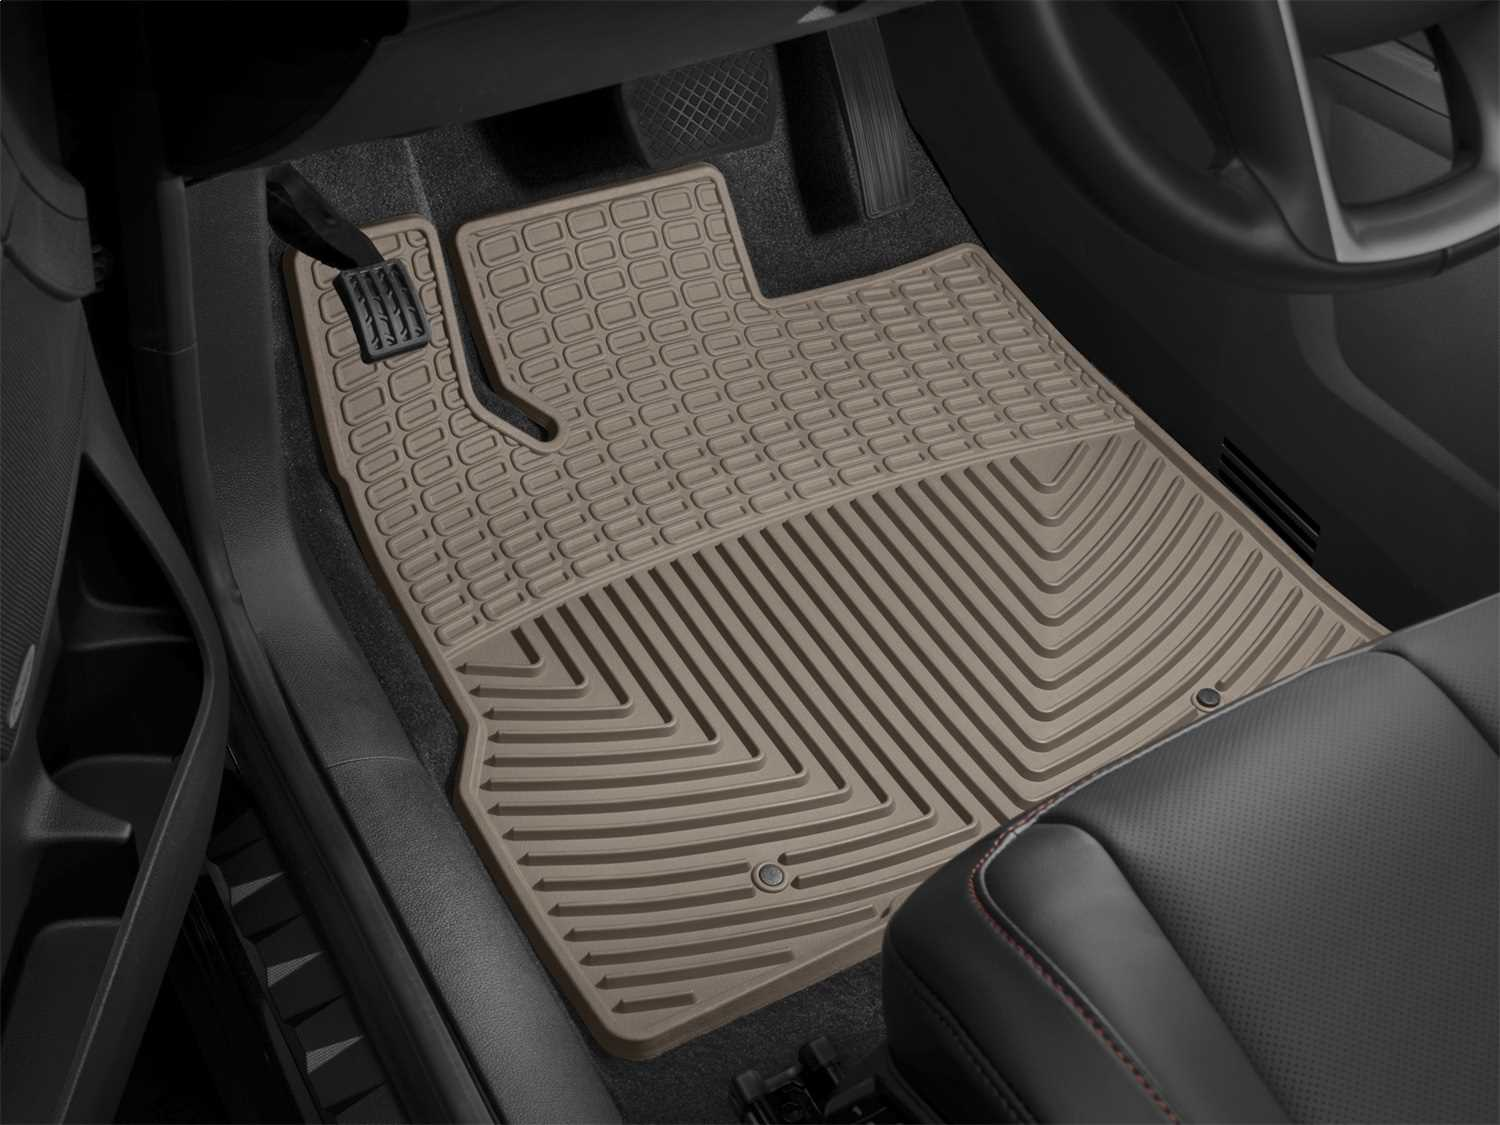 W378TN WeatherTech All Weather Floor Mats